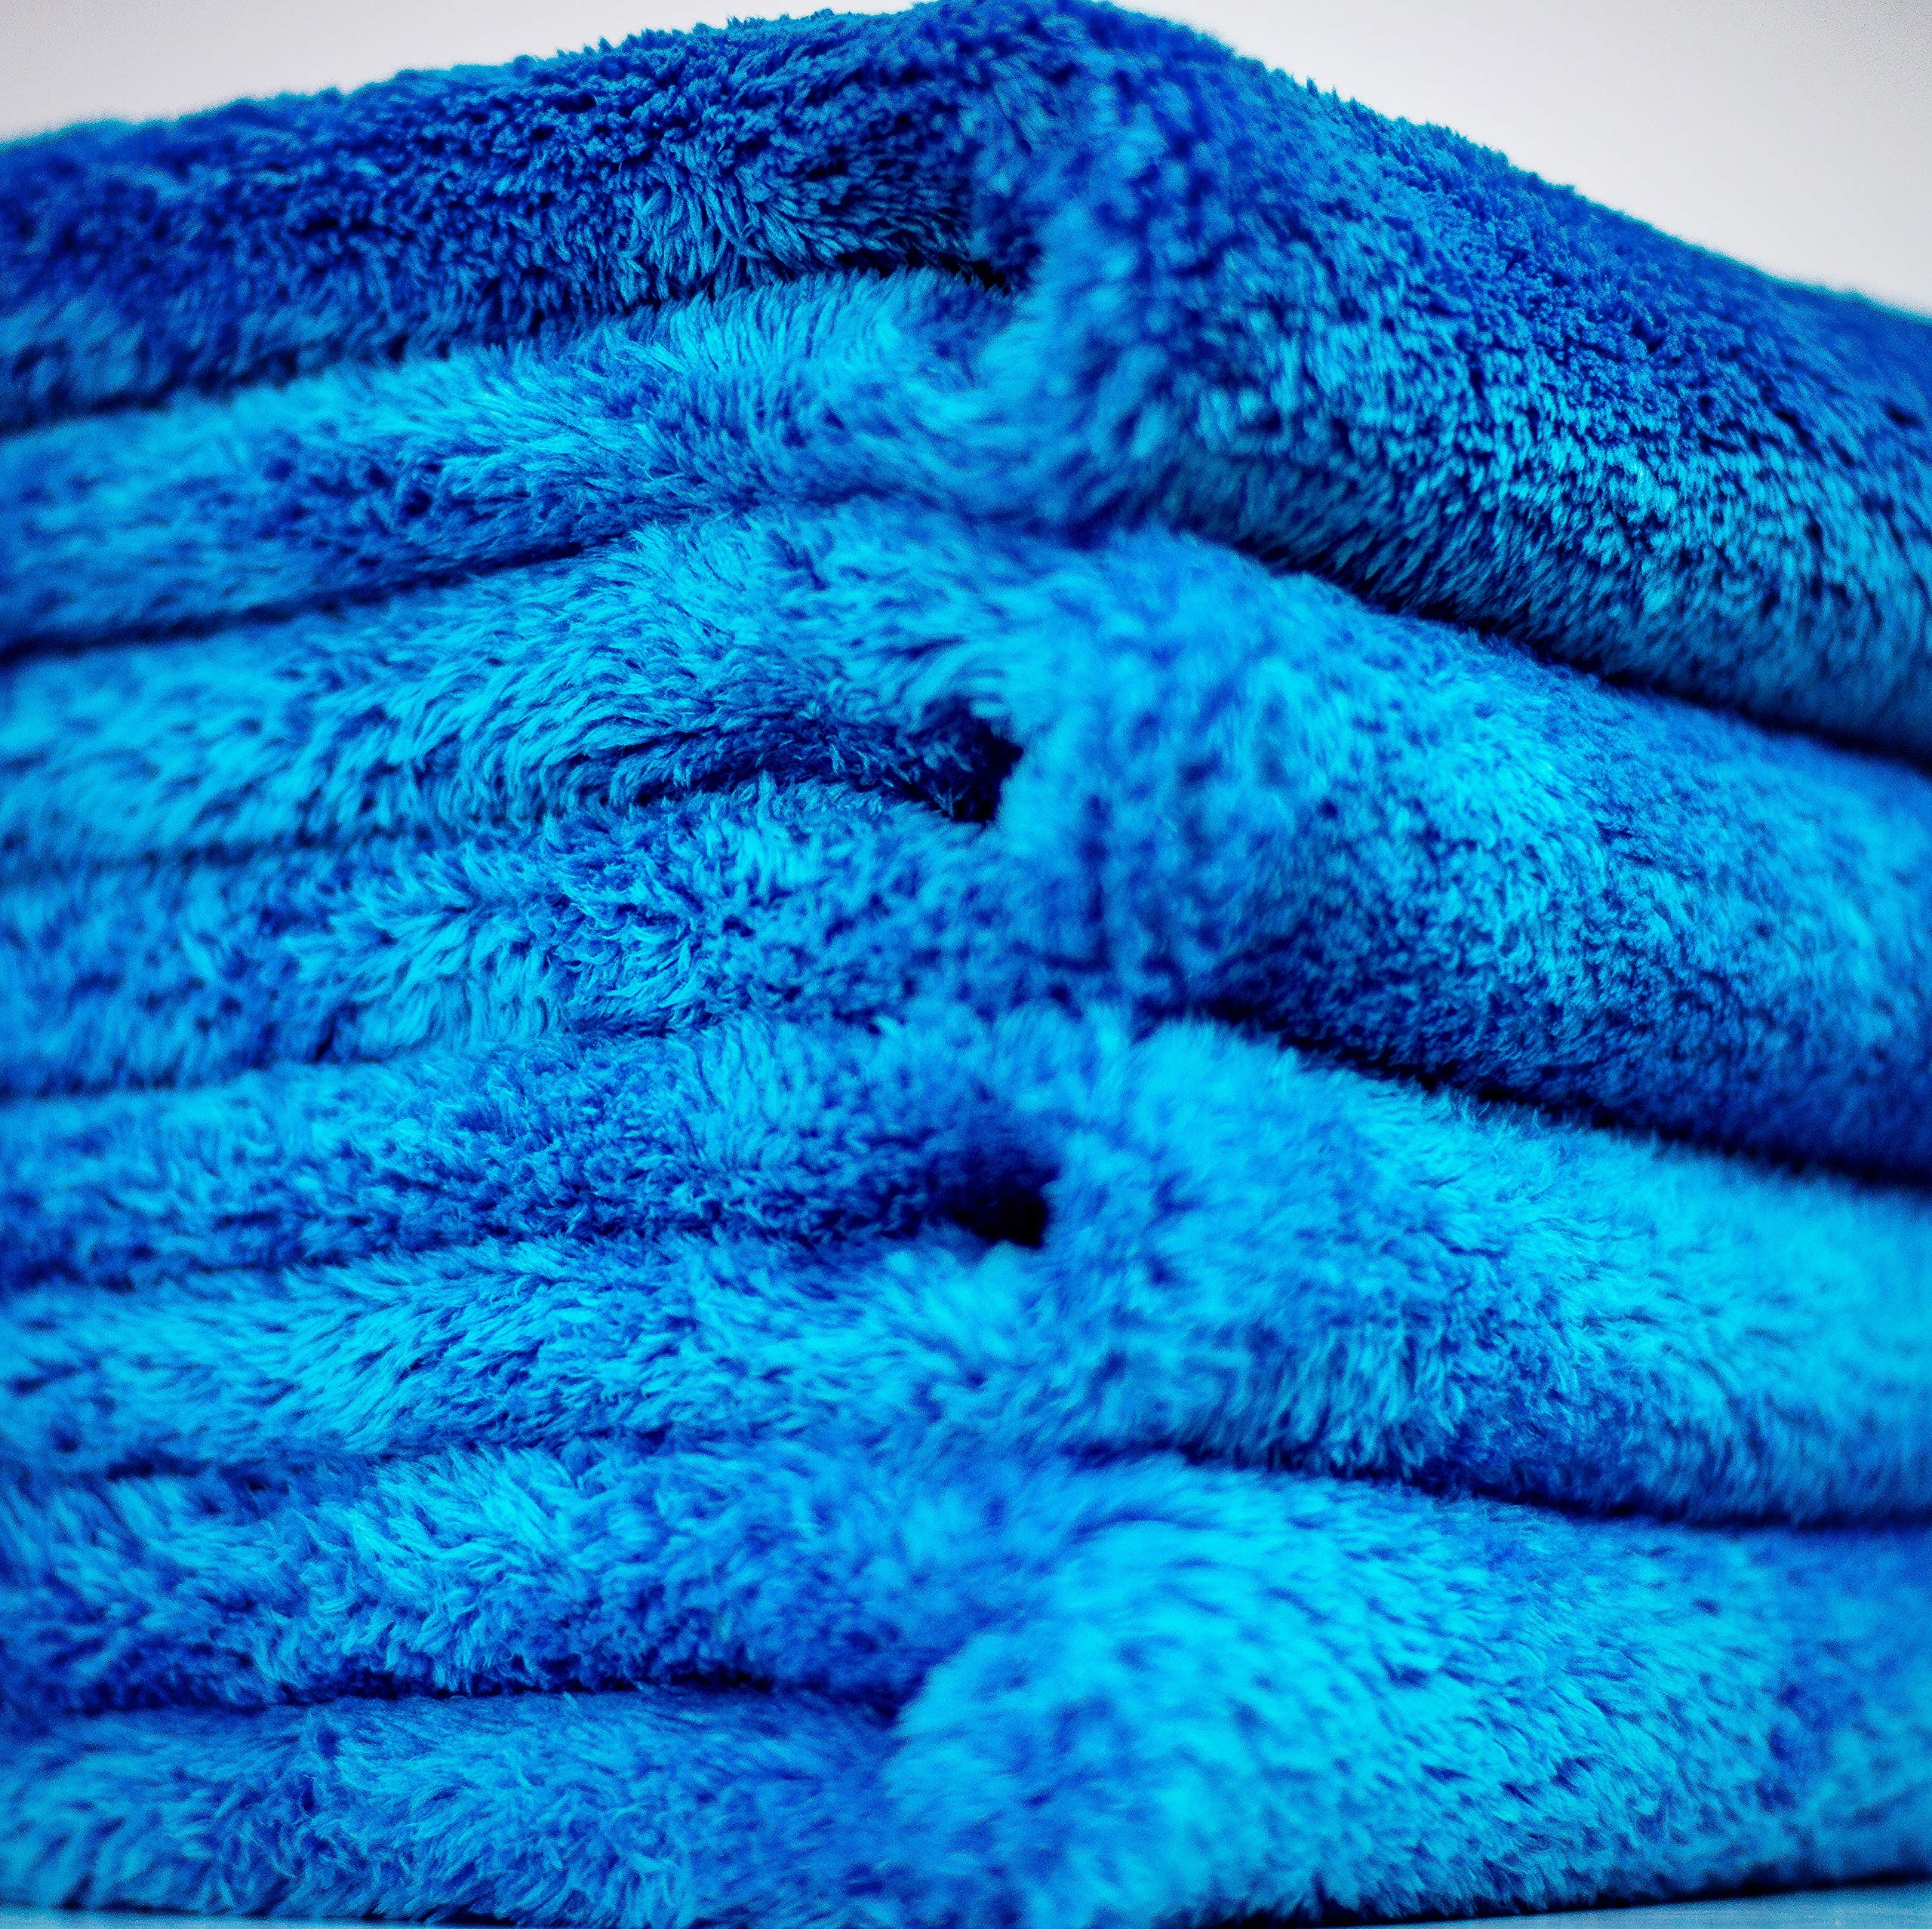 Bull Shine Plush No Edge Microfiber Towel - Blue, 16''x16'' (5 Pack) - Plush Edgeless Microfiber Towels